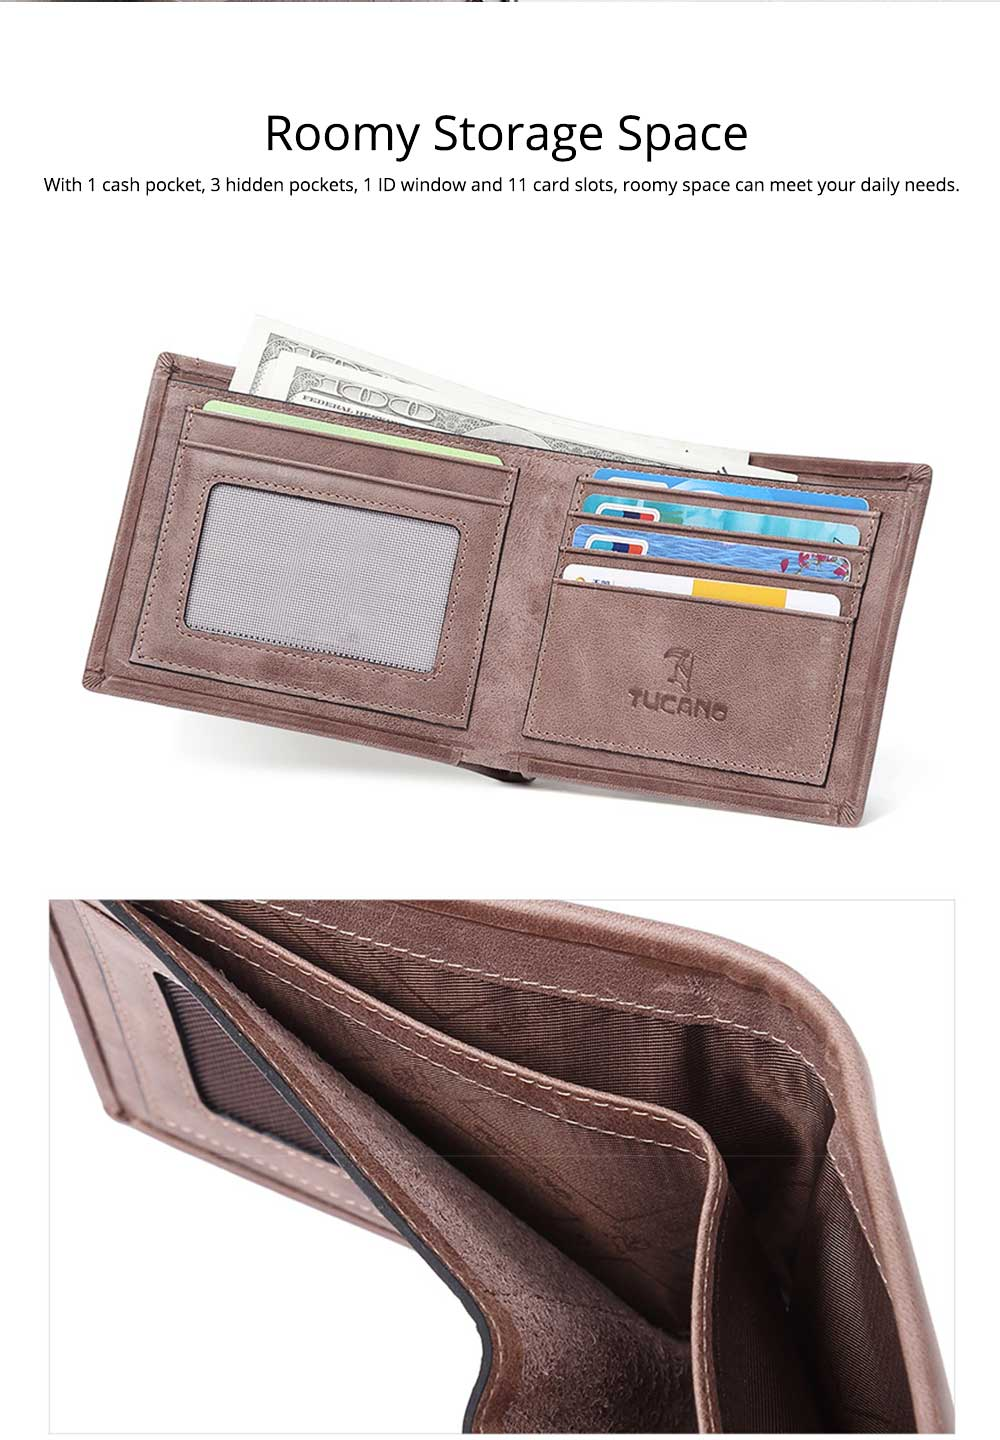 Cow Leather Minimalist Wallet for Men, Fashionable Cross Grain Wallet, Bifold Slim Wallets for Trip Travel Daily Use 1